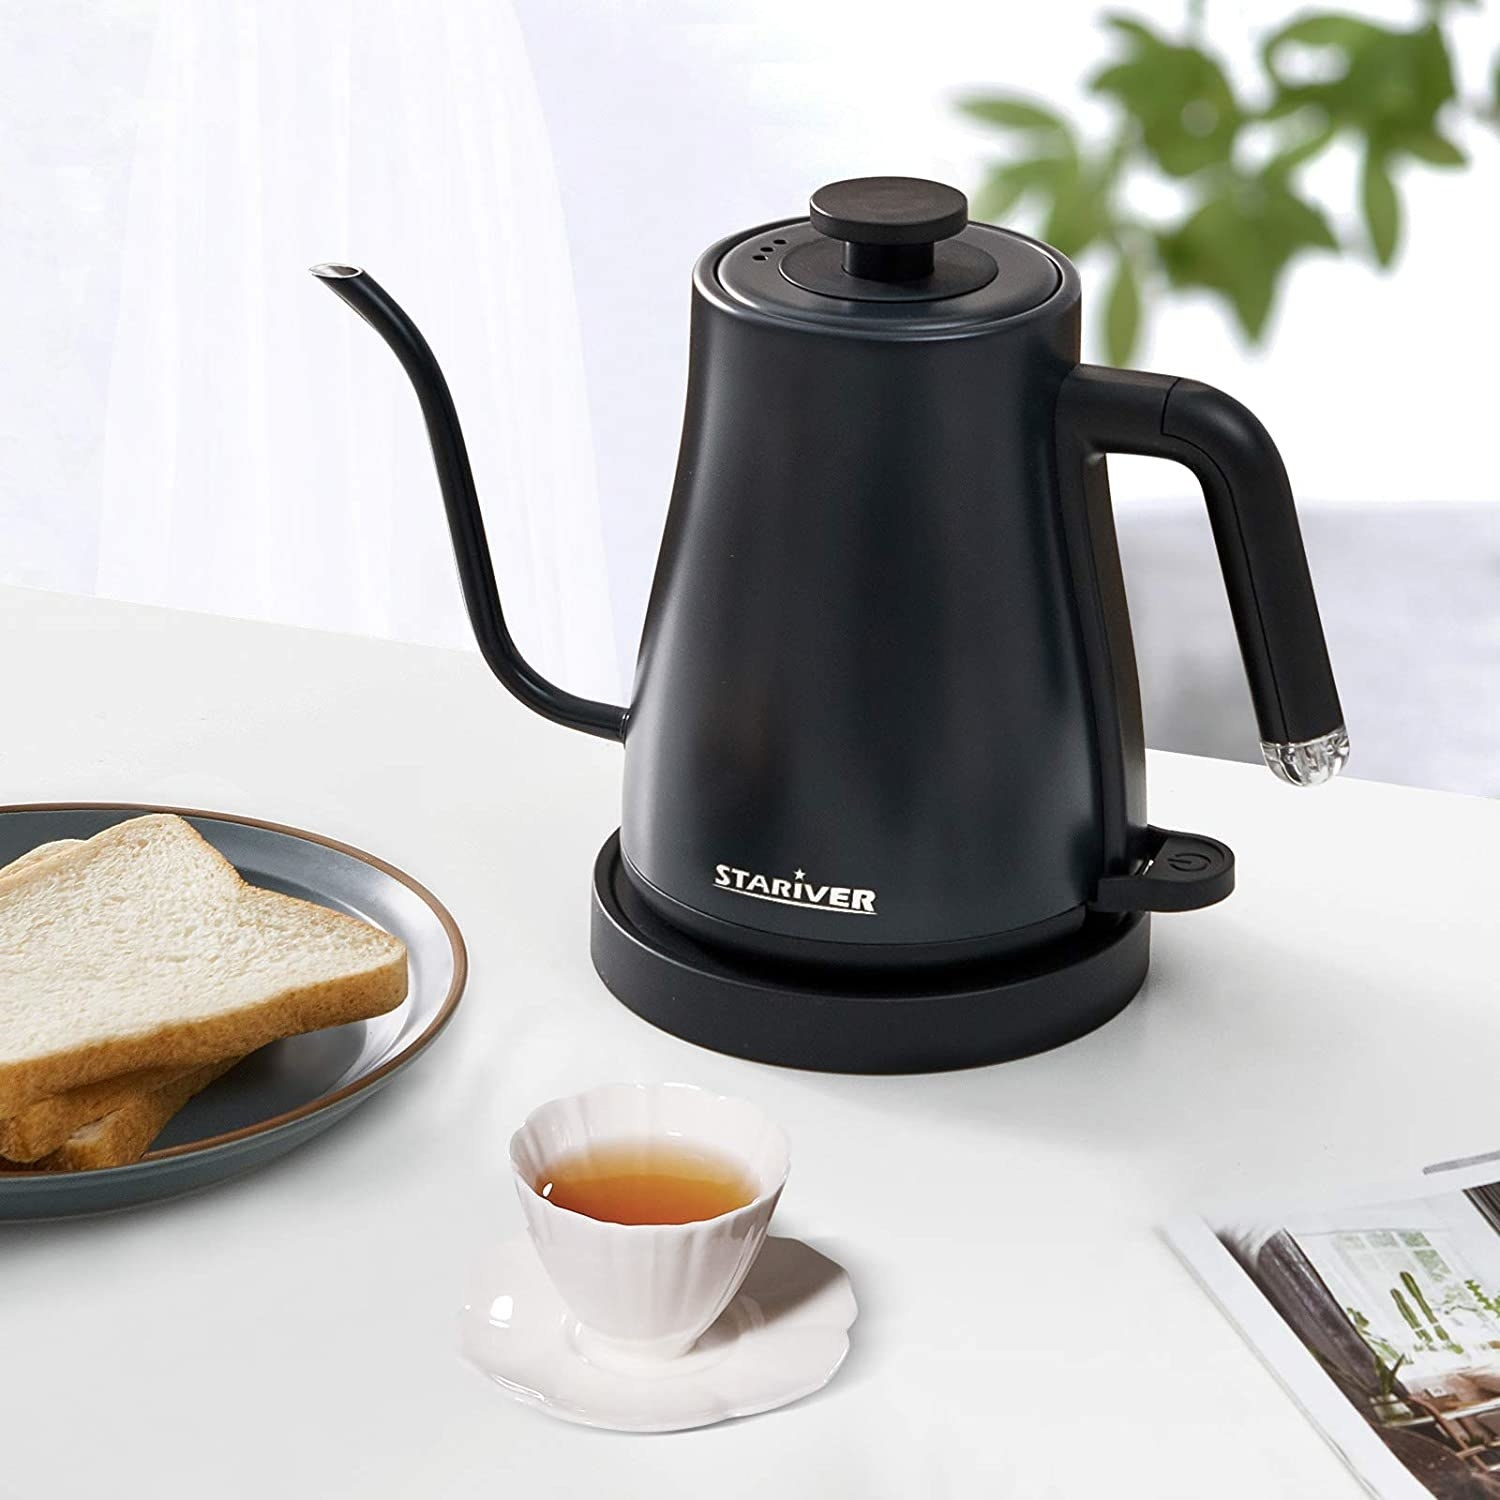 The Stariver Electric Kettle Gooseneck Kettle on a kitchen counter